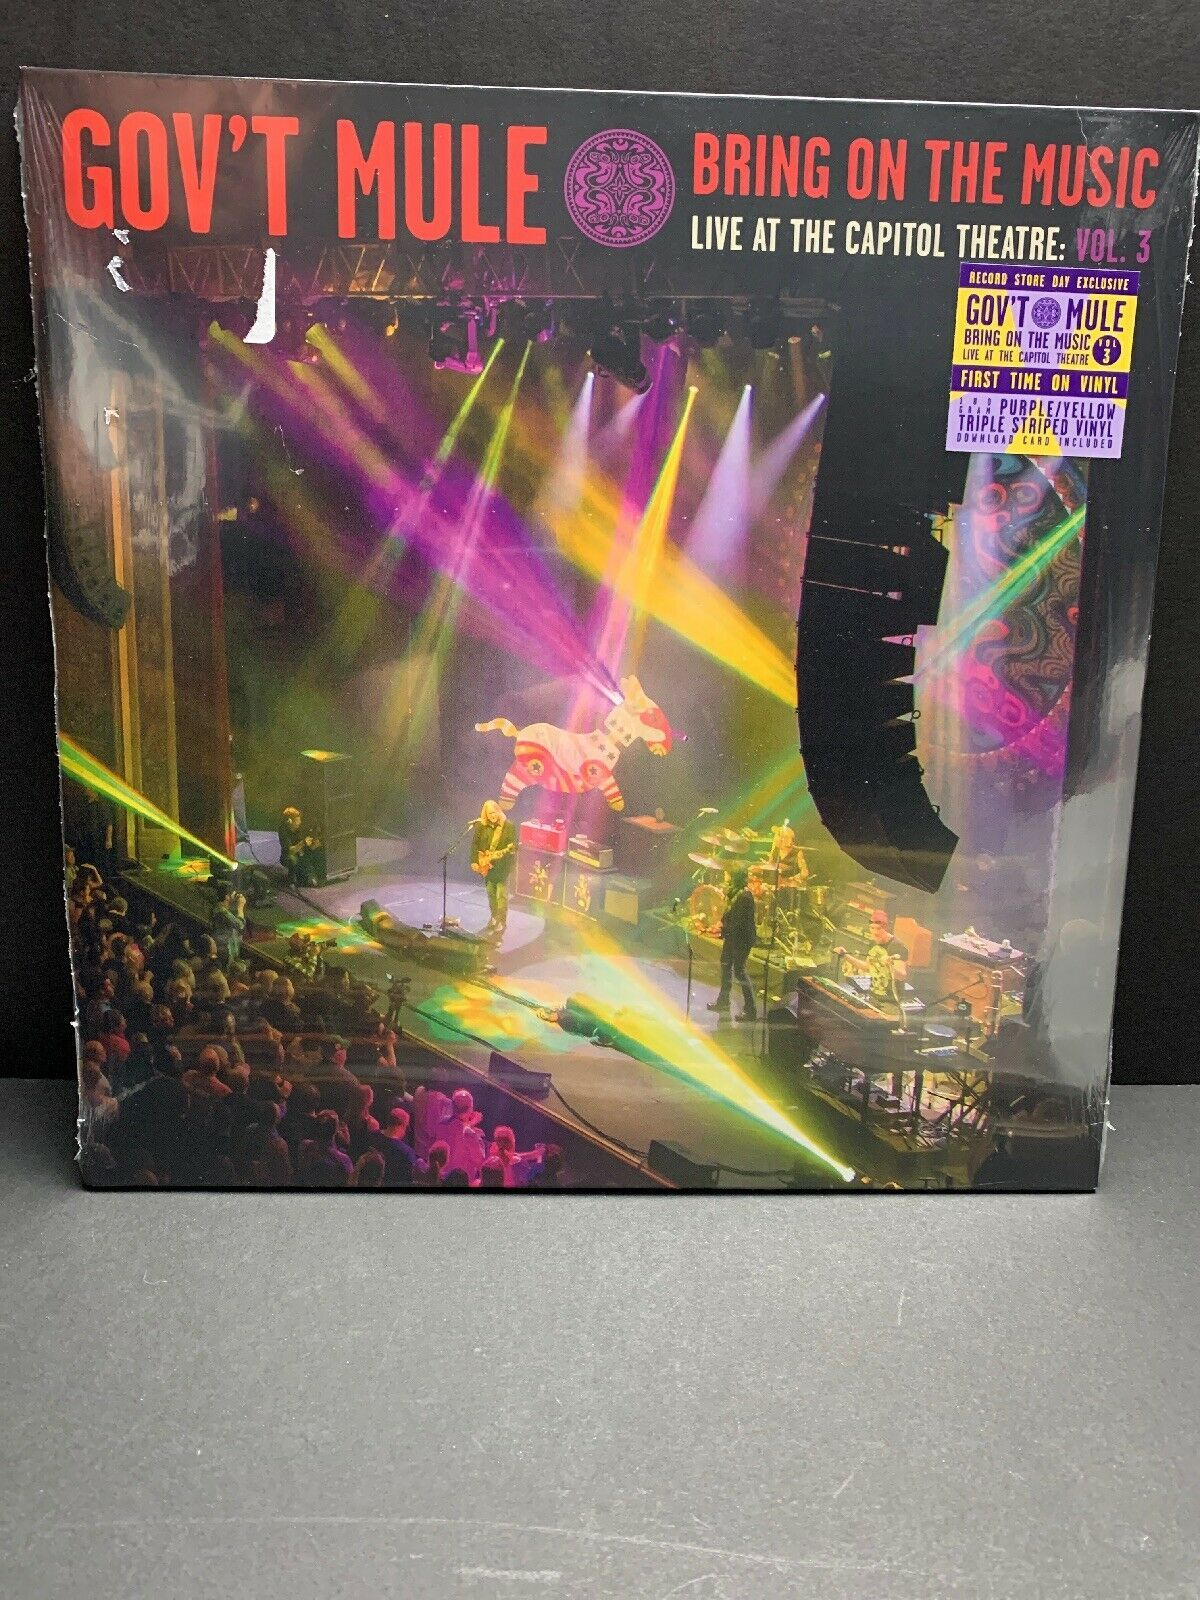 Primary image for Gov't Mule Bring On the Music Live At The Capitol Theatre Vol3 Colored Vinyl RSD